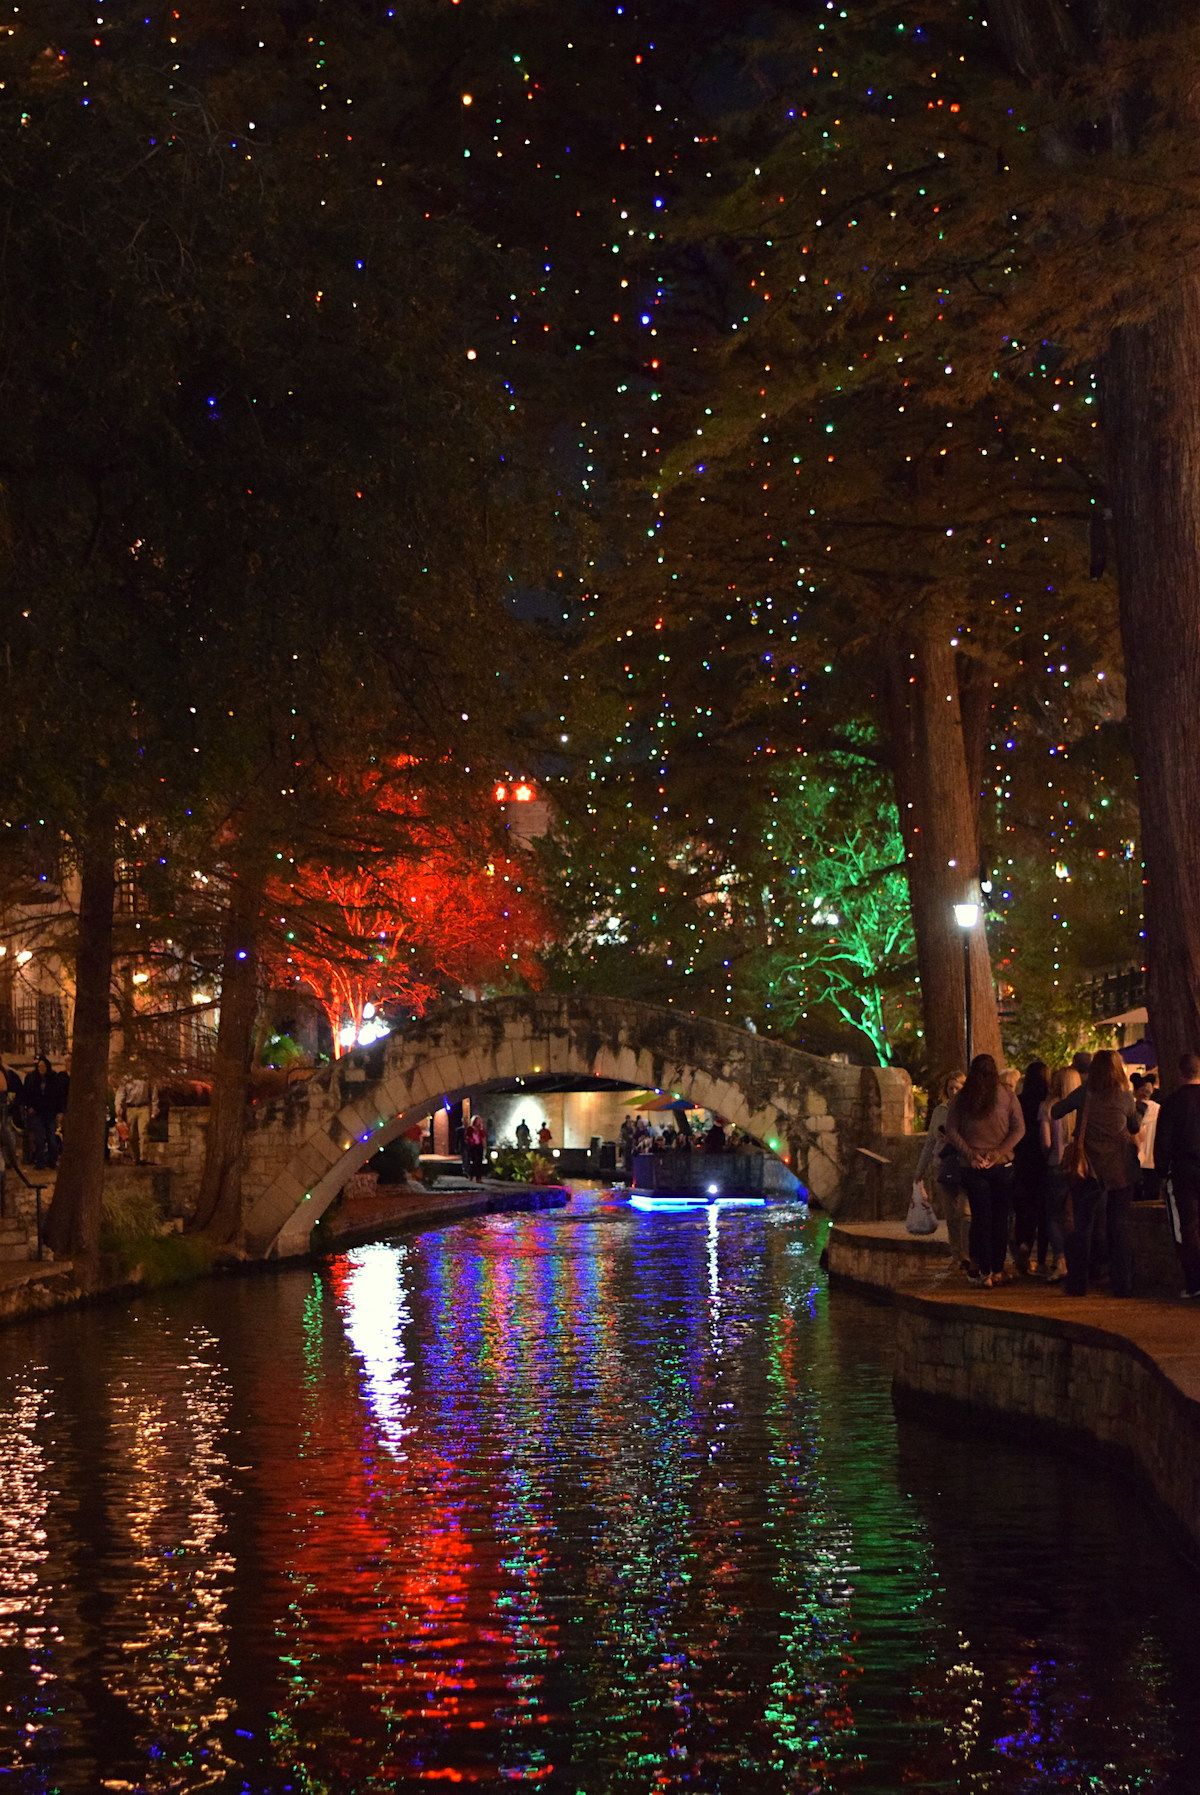 The Best Way To See River Walk Holiday Lights In On A Go